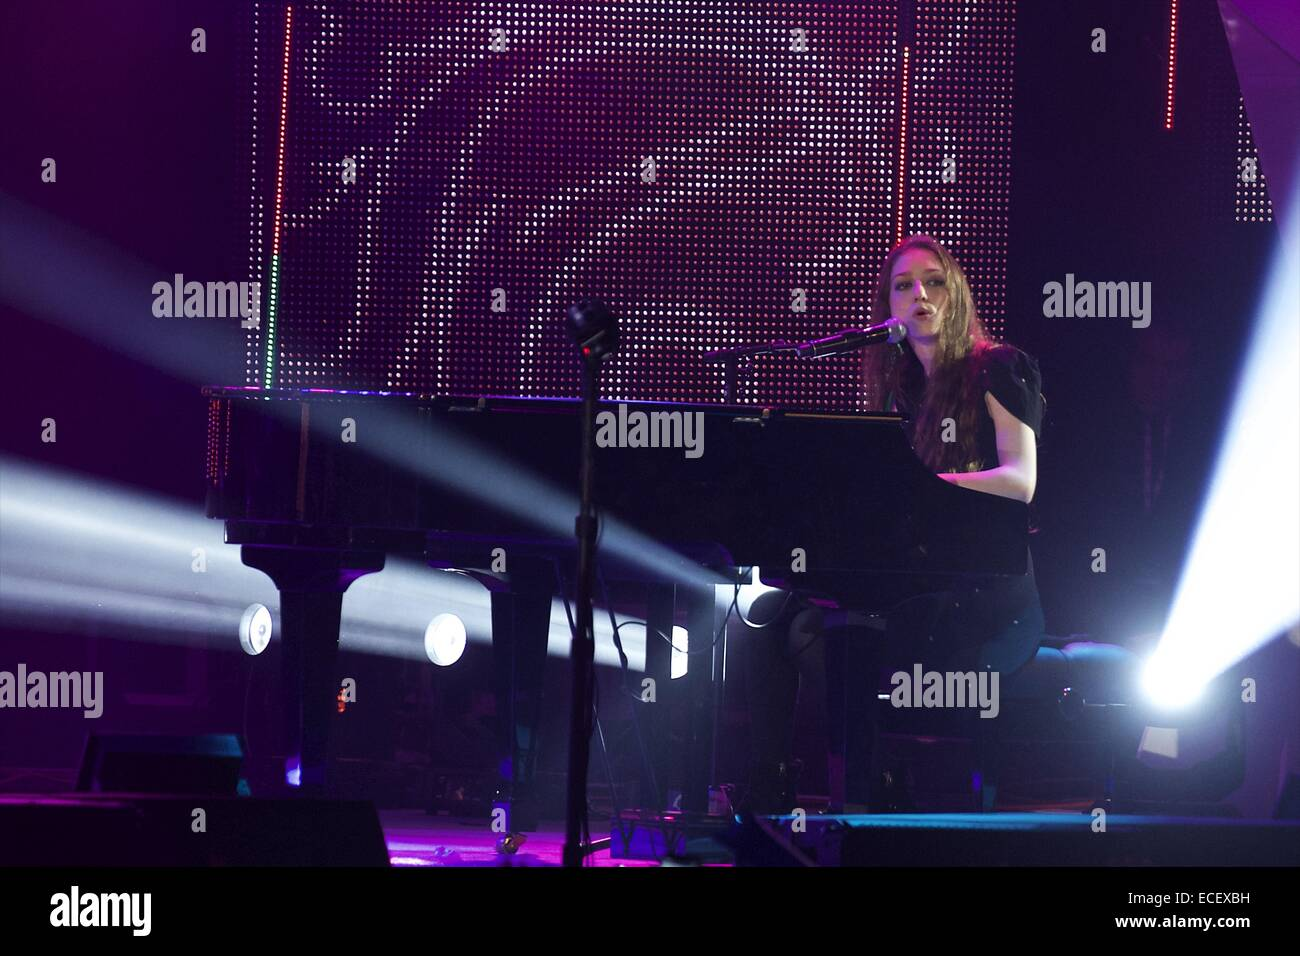 Madrid Spain 12th Dec 2014 Birdy Performs During 40 Principales